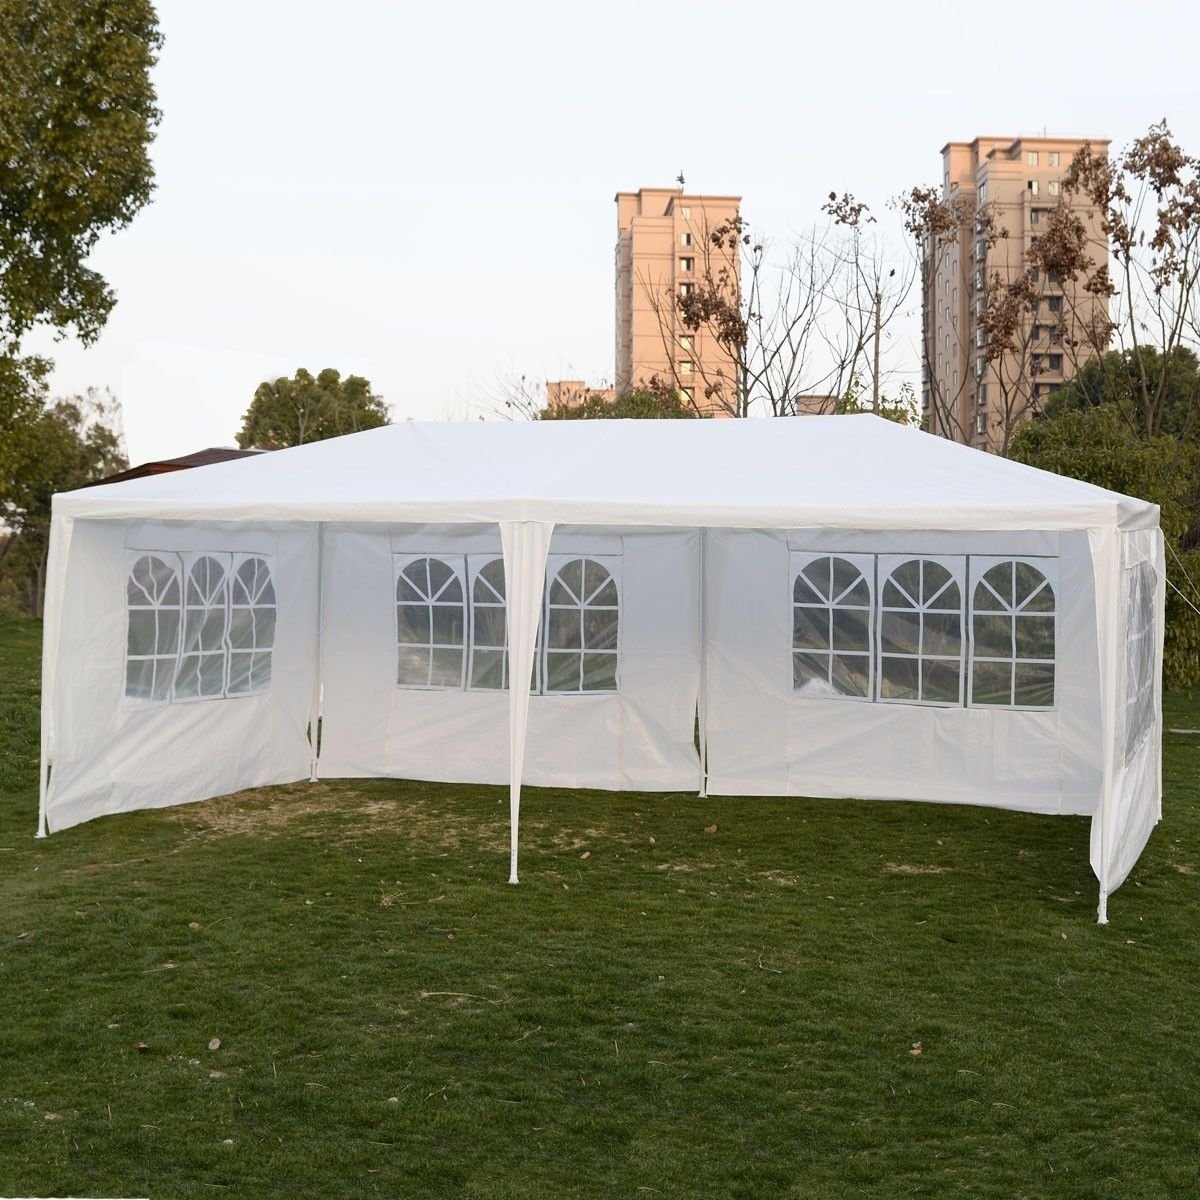 Amazon.com  10u0027x20u0027Canopy Party Wedding Tent Heavy duty Gazebo Pavilion Cater Events  Sports u0026 Outdoors  sc 1 st  Amazon.com : tent heavy duty - memphite.com